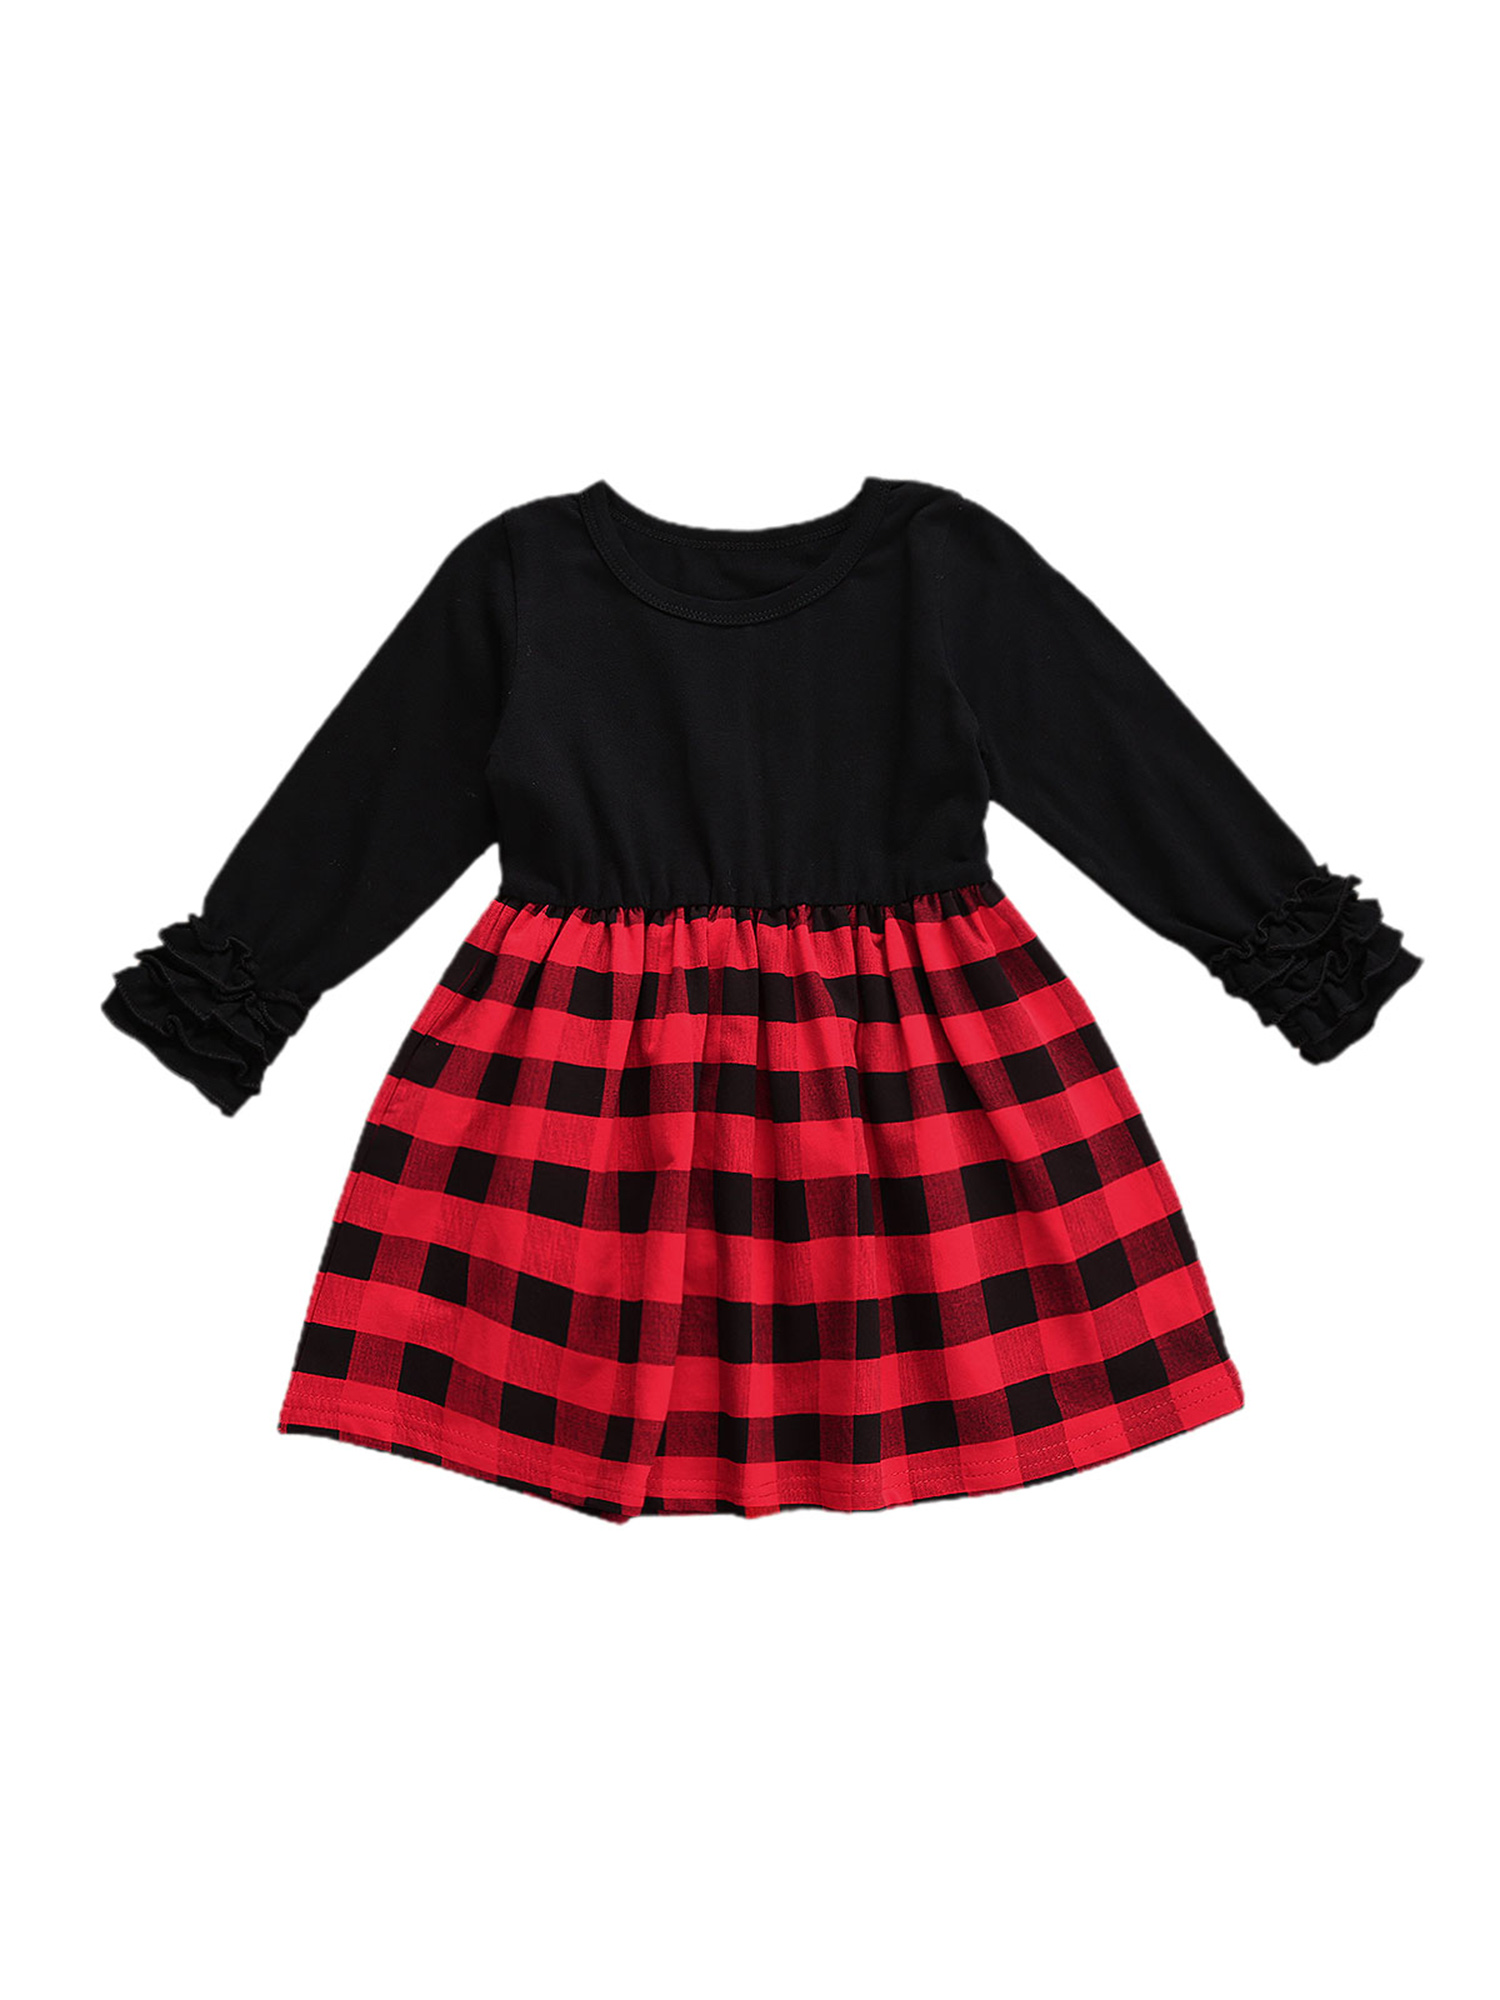 Carolilly Baby Christmas Outfits, Red Plaid Splicing O-Neck Long Pleated  Sleeves Dress for Toddlers, Girls, 6 Months to 6 Years